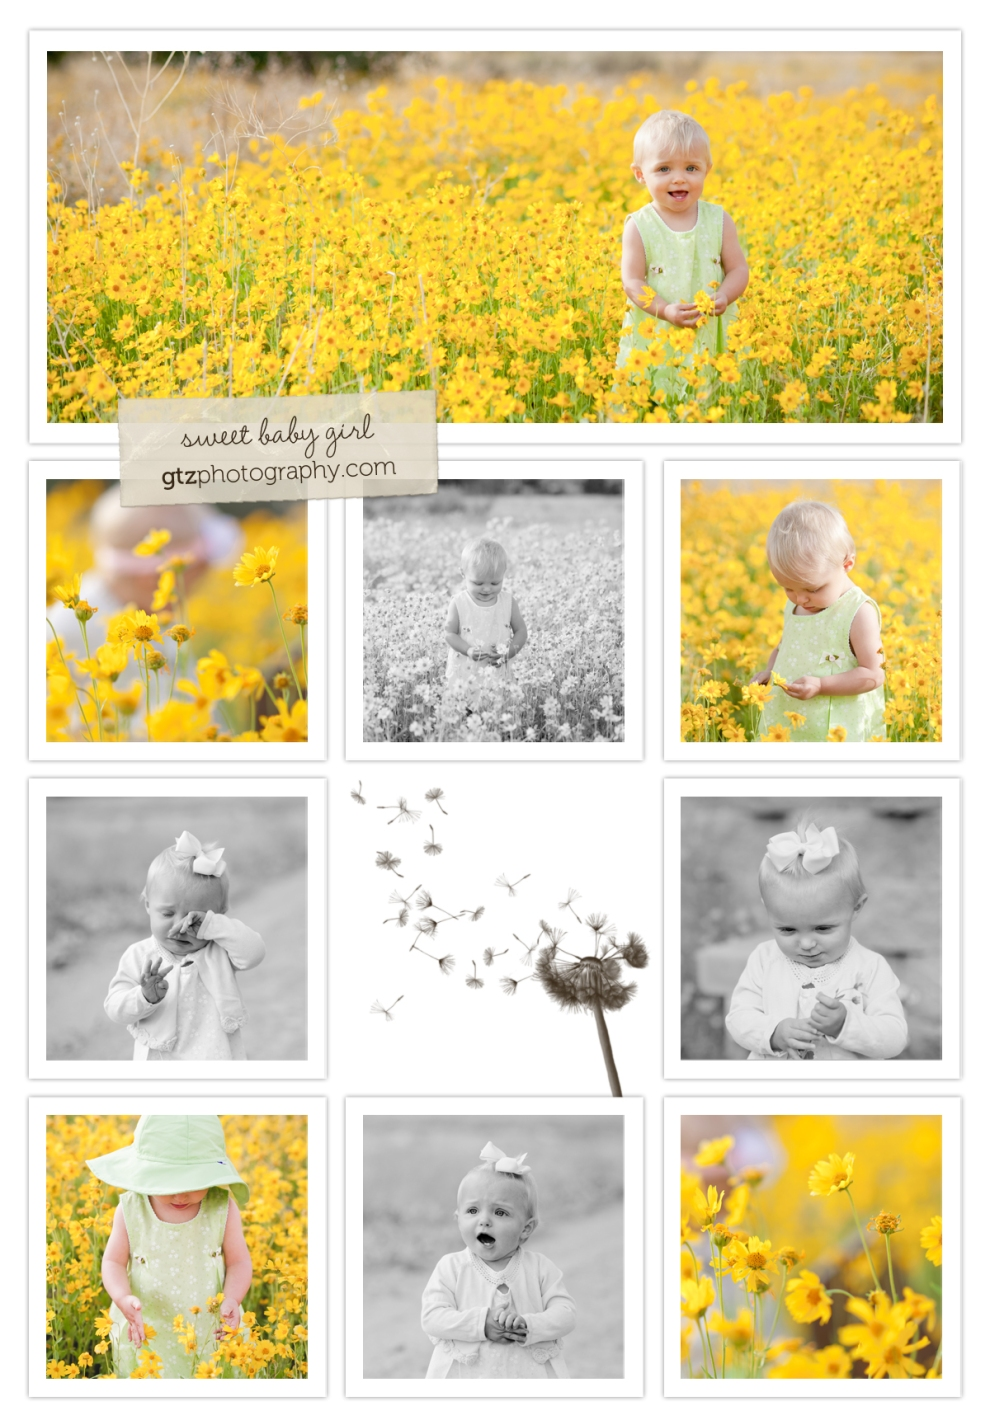 Baby girl standing in field of yellow flowers